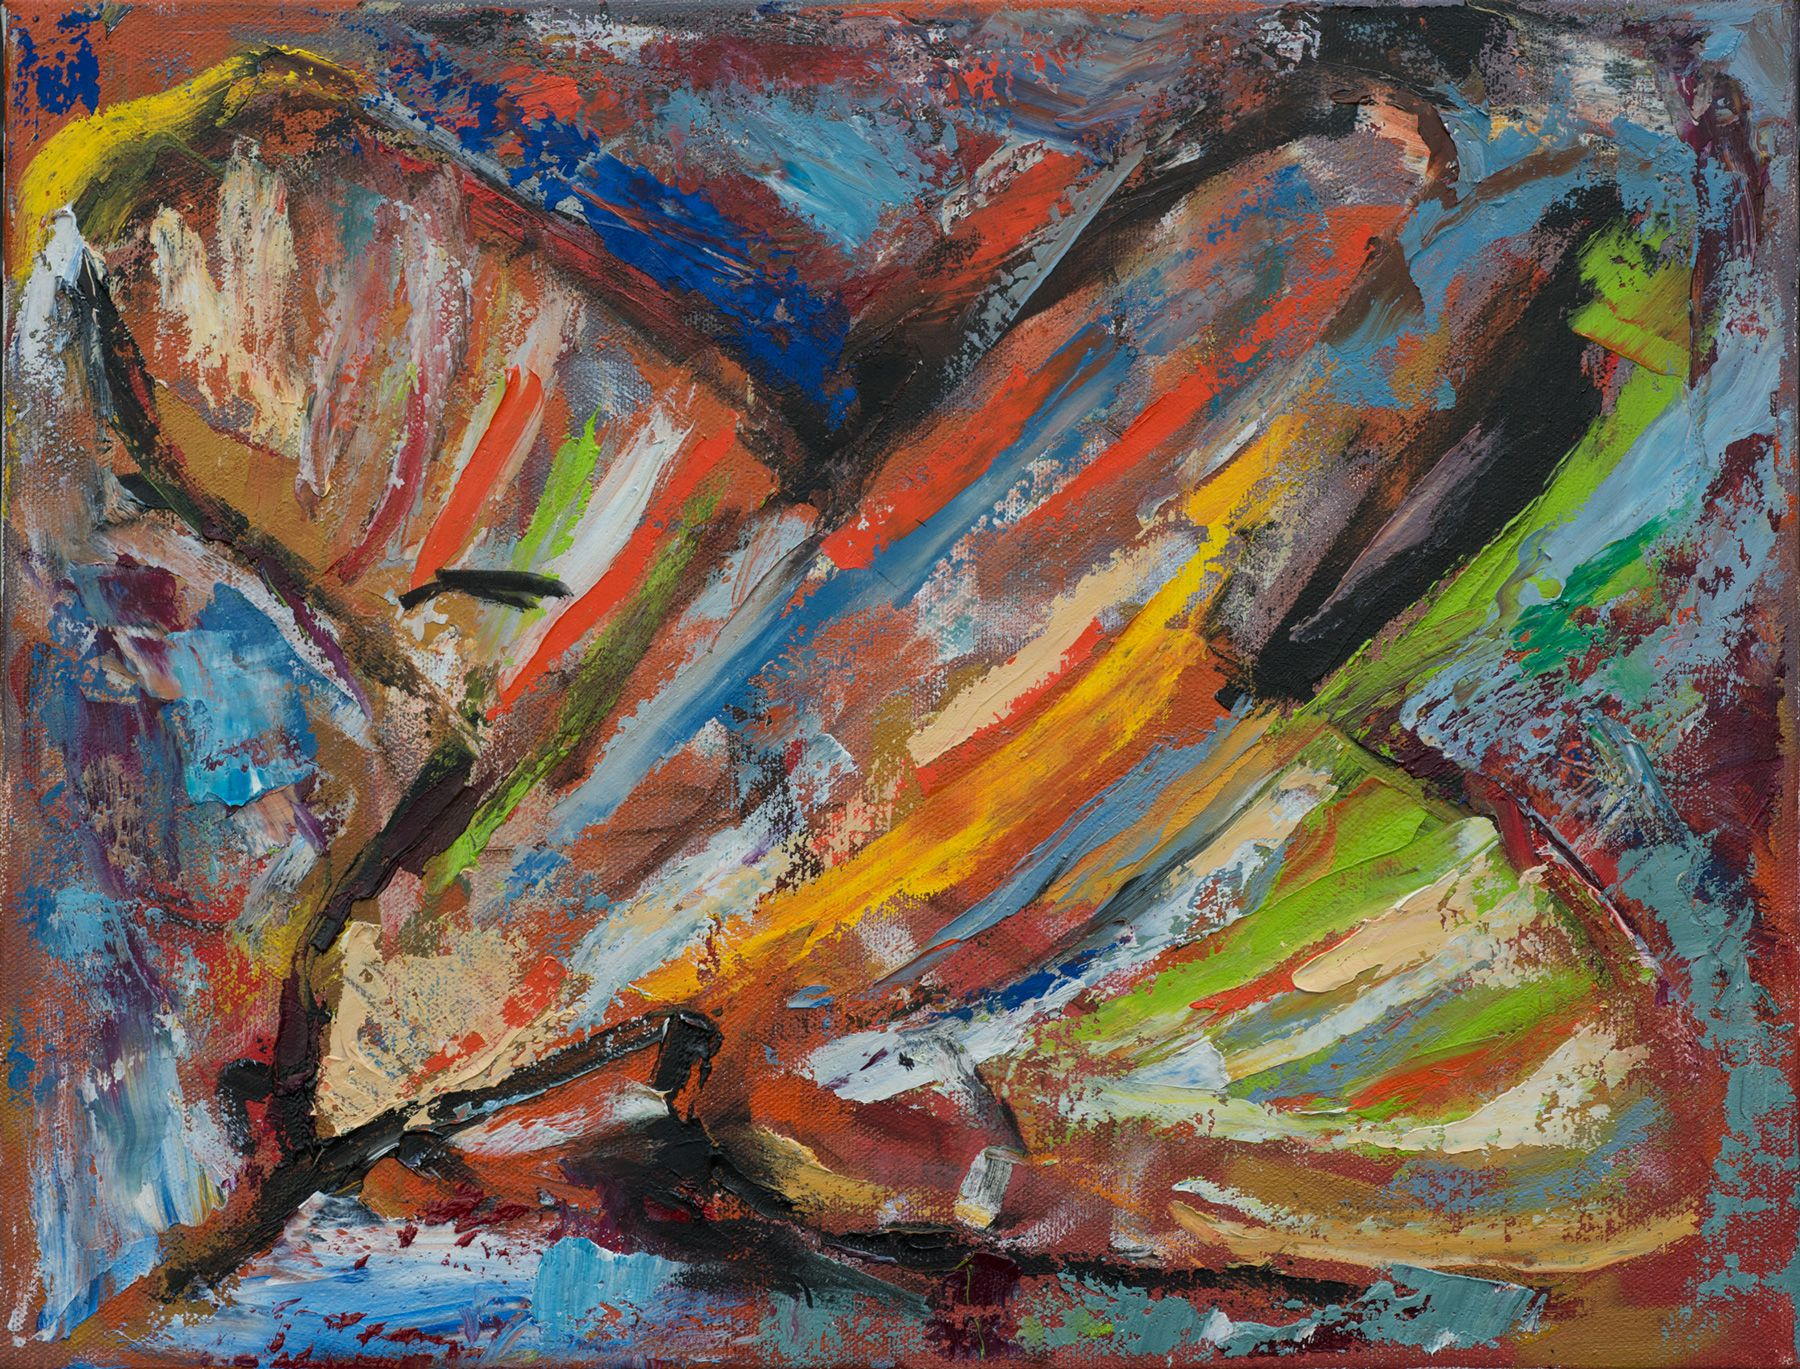 Fly Away, oil on canvas, price on request